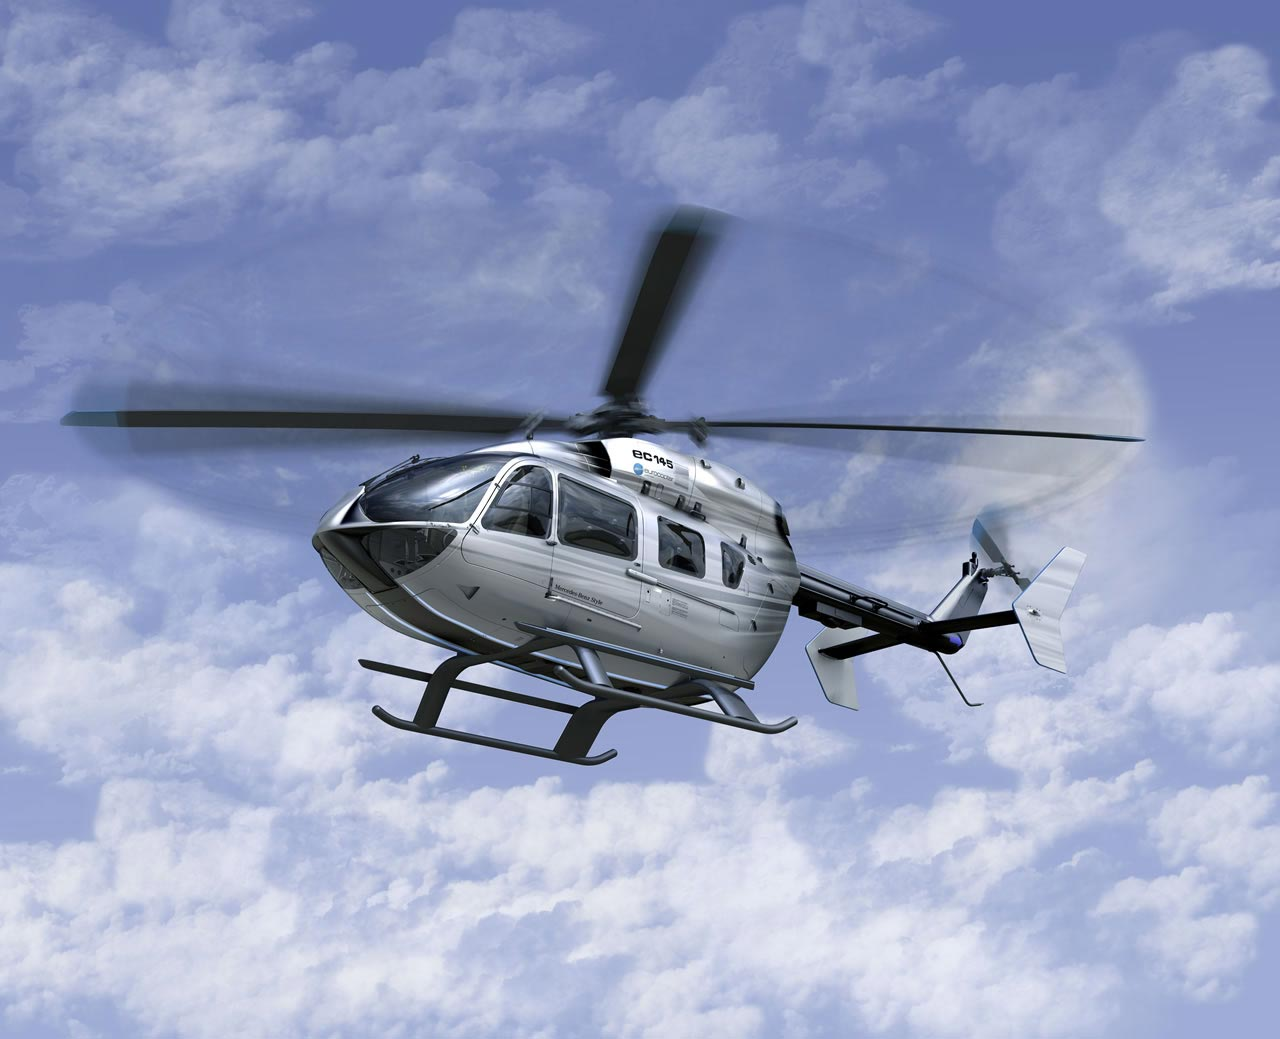 Mercedes Benz Eurocopter Ec